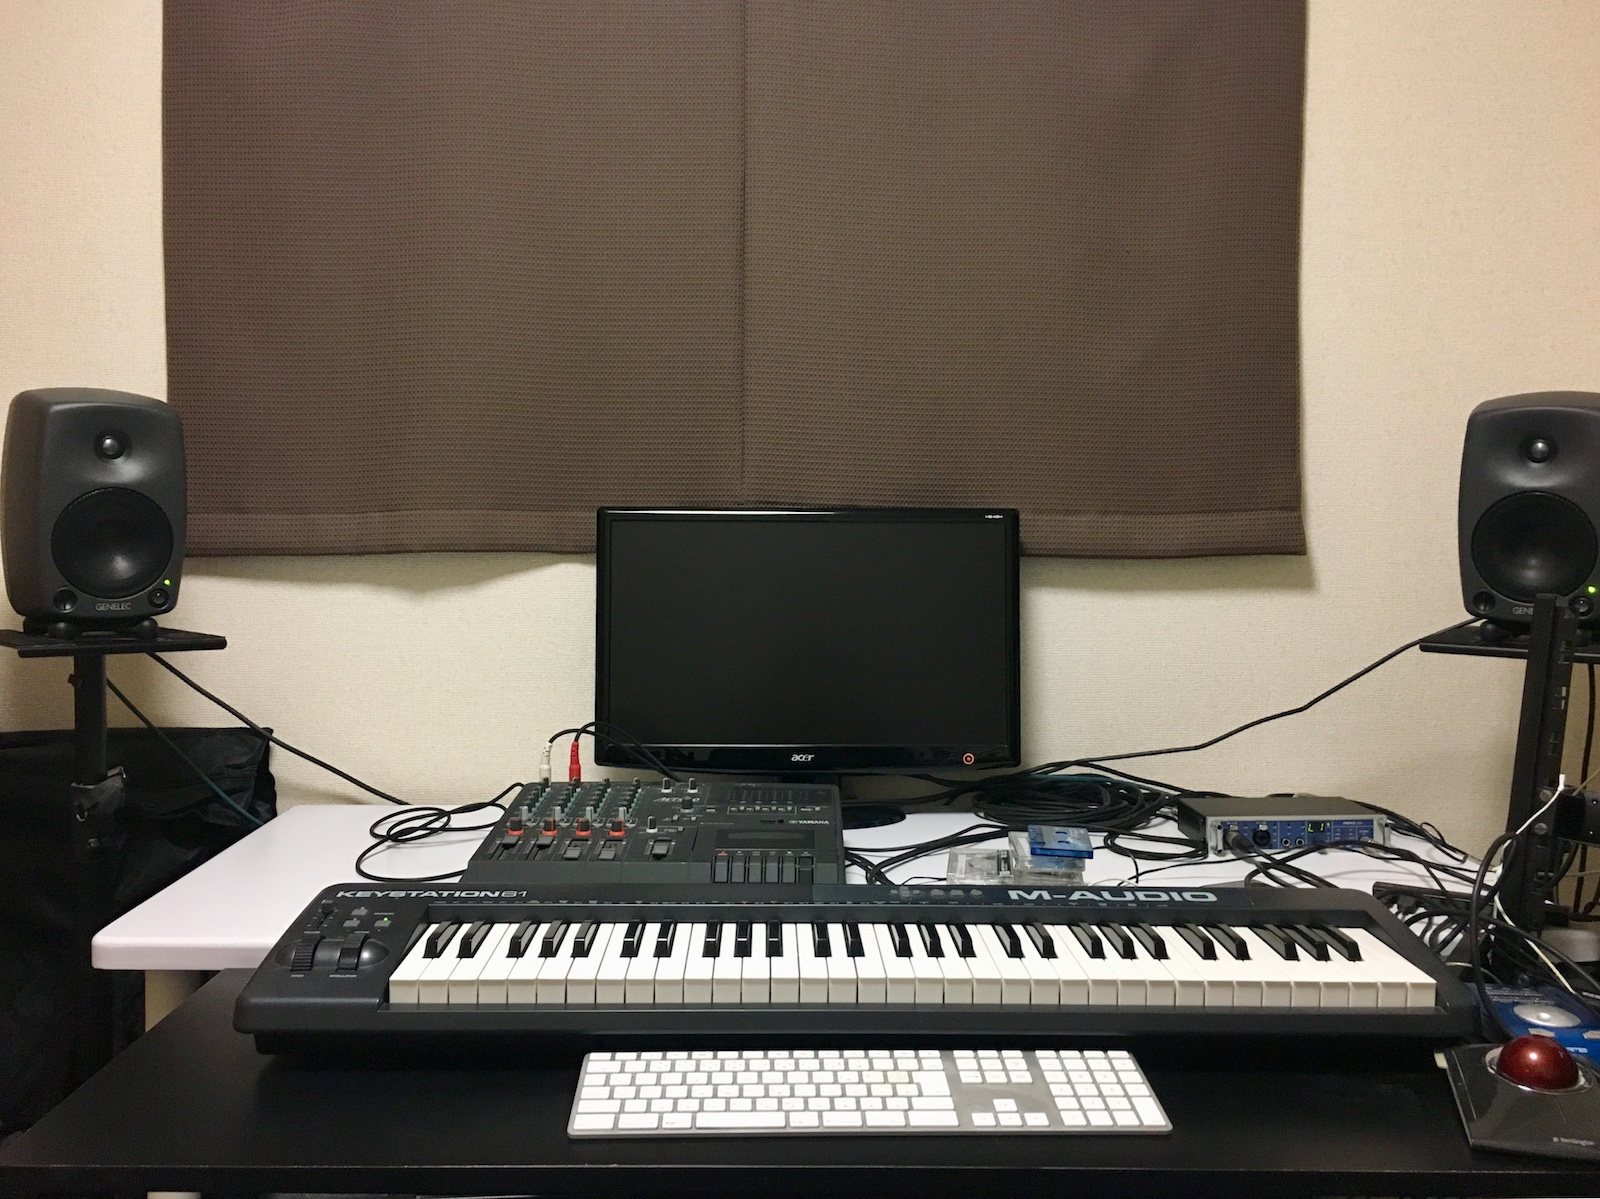 20181005_sonarworks-user-review-6-front